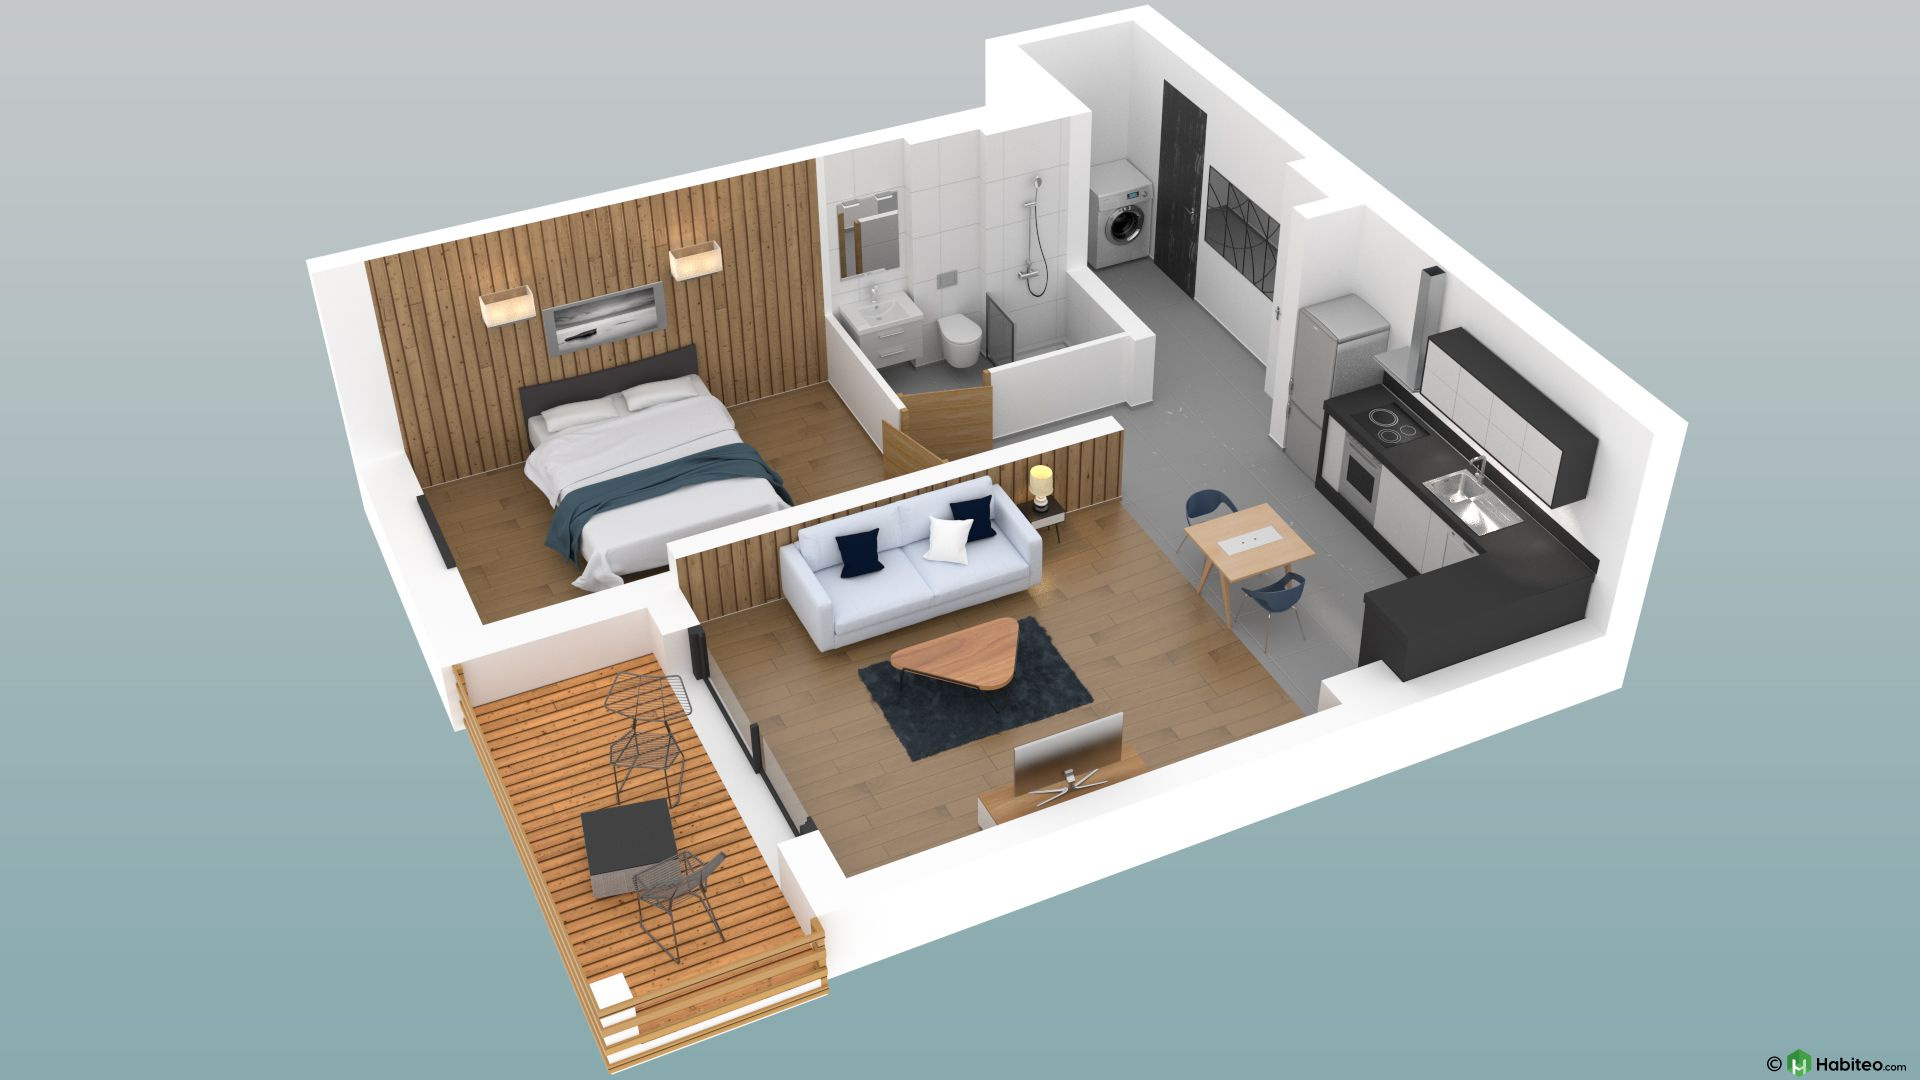 46.70 SQM 2-ROOM NEW BUILD